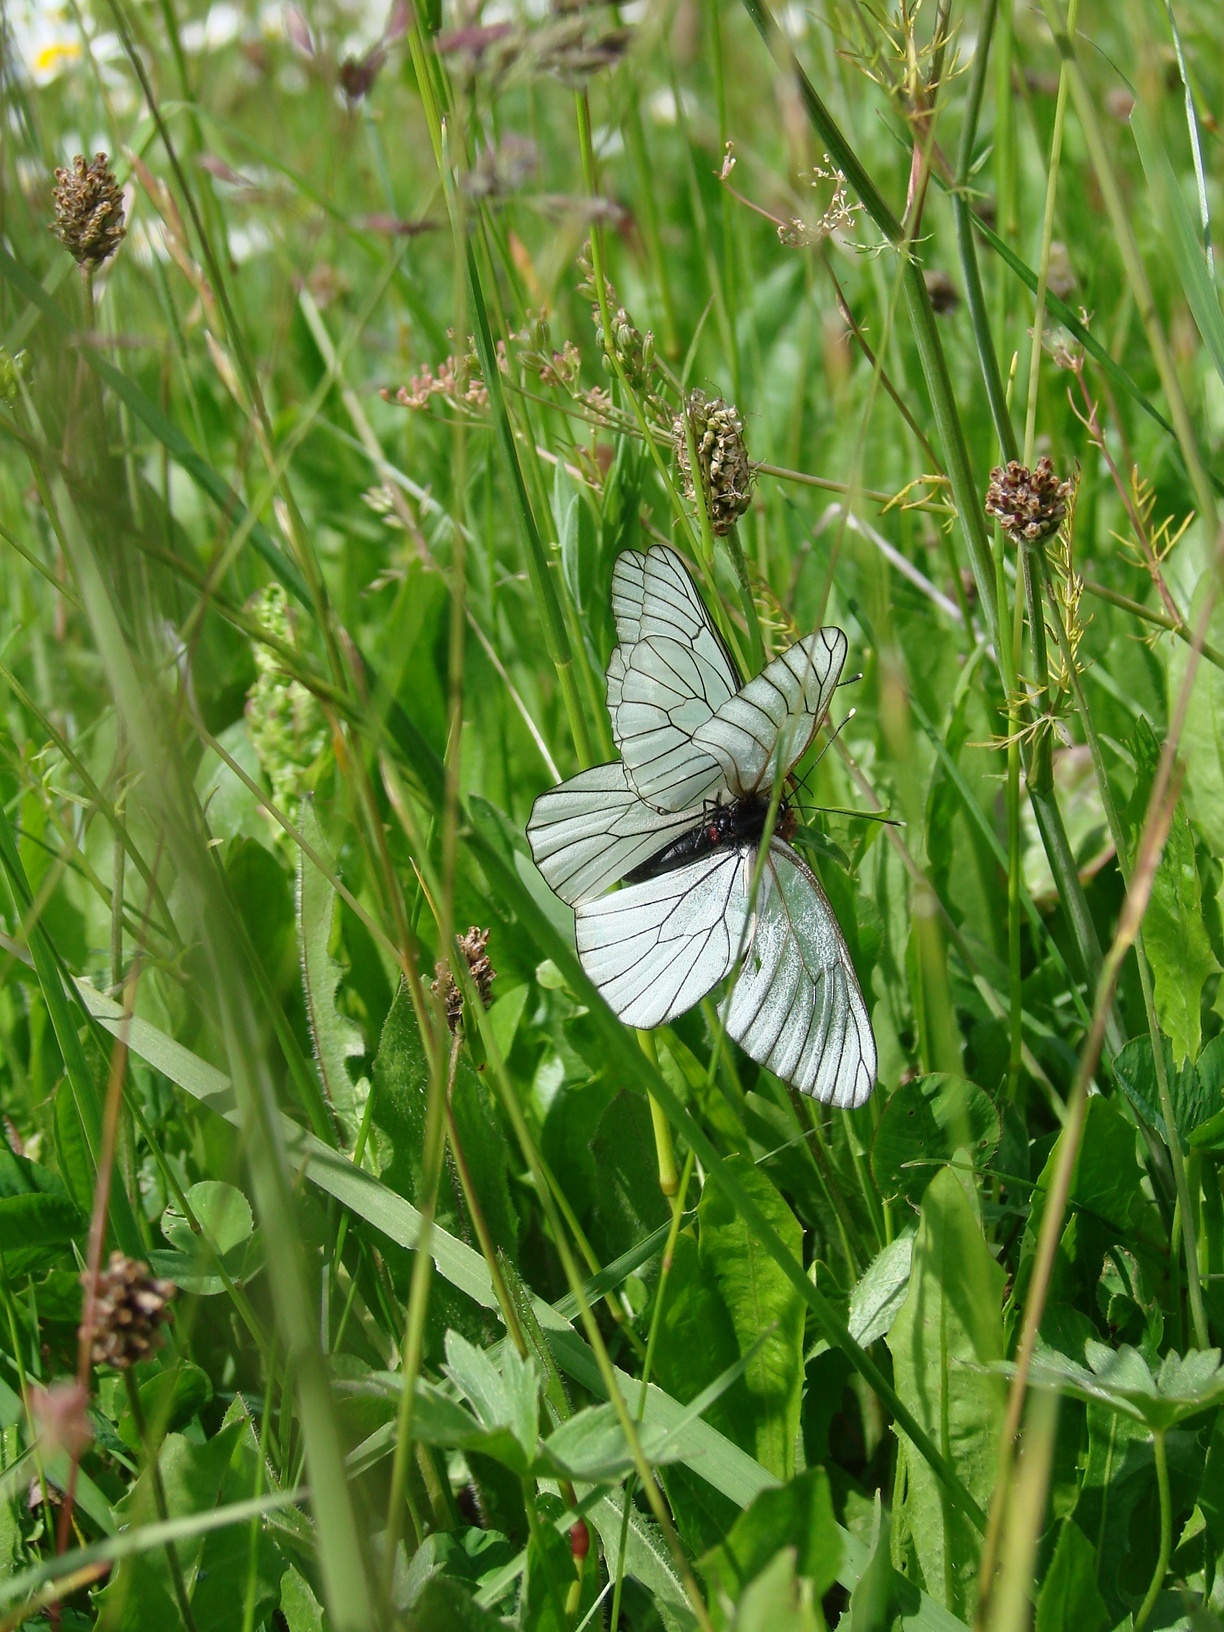 Image of black-veined white